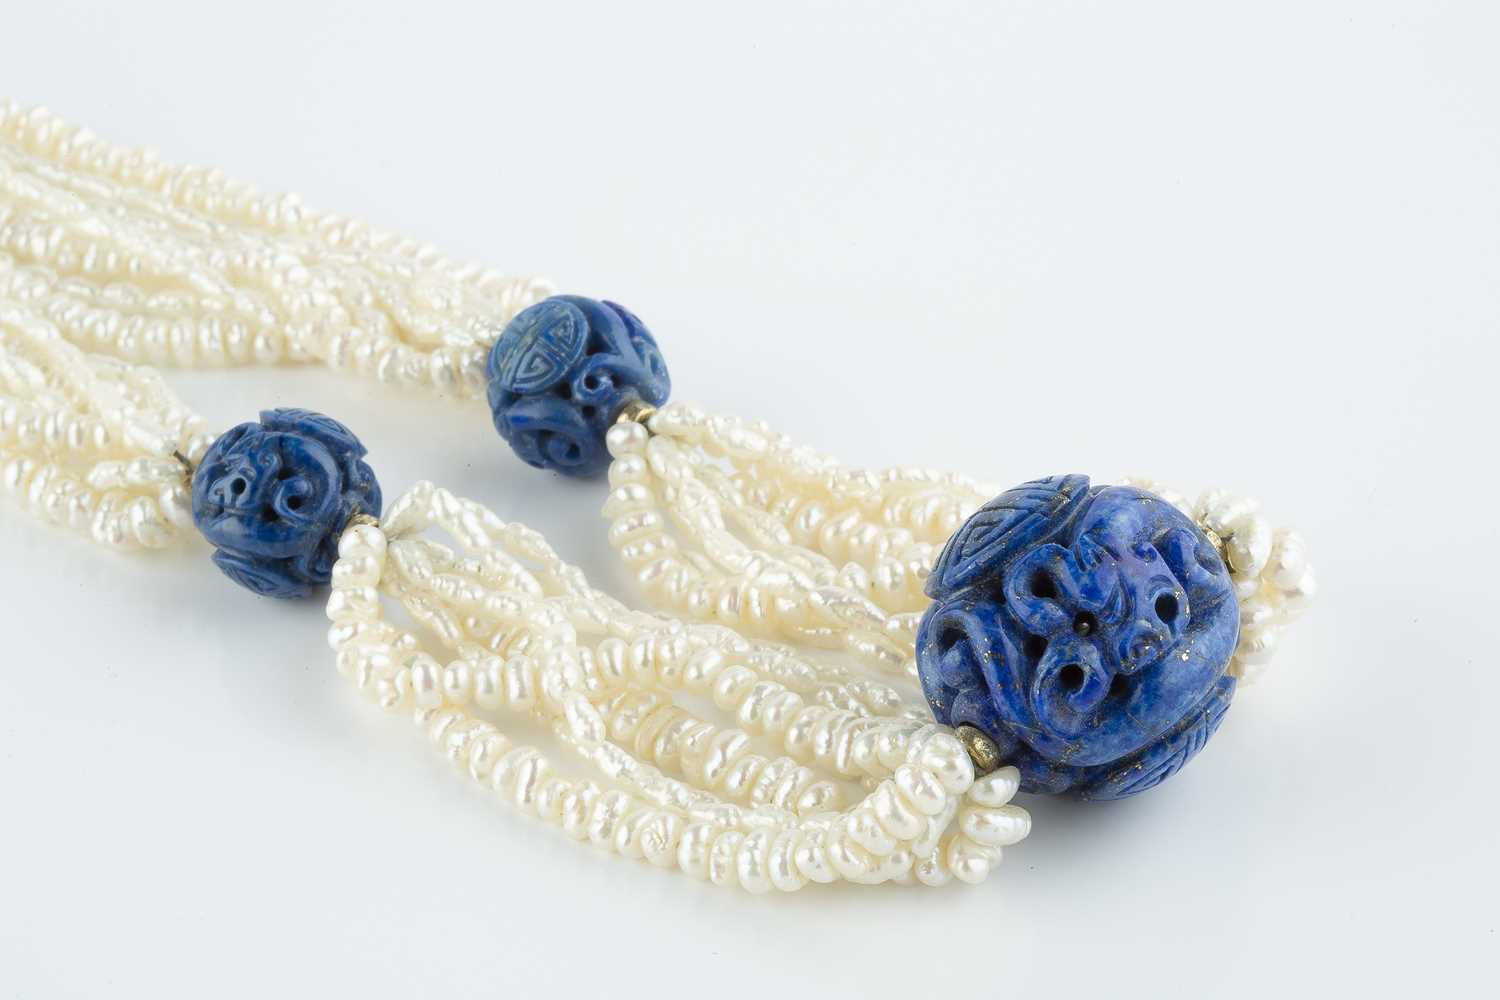 A freshwater pearl torsade and lapis lazuli bead necklace, the freshwater pearl torsade spaced by - Image 2 of 3